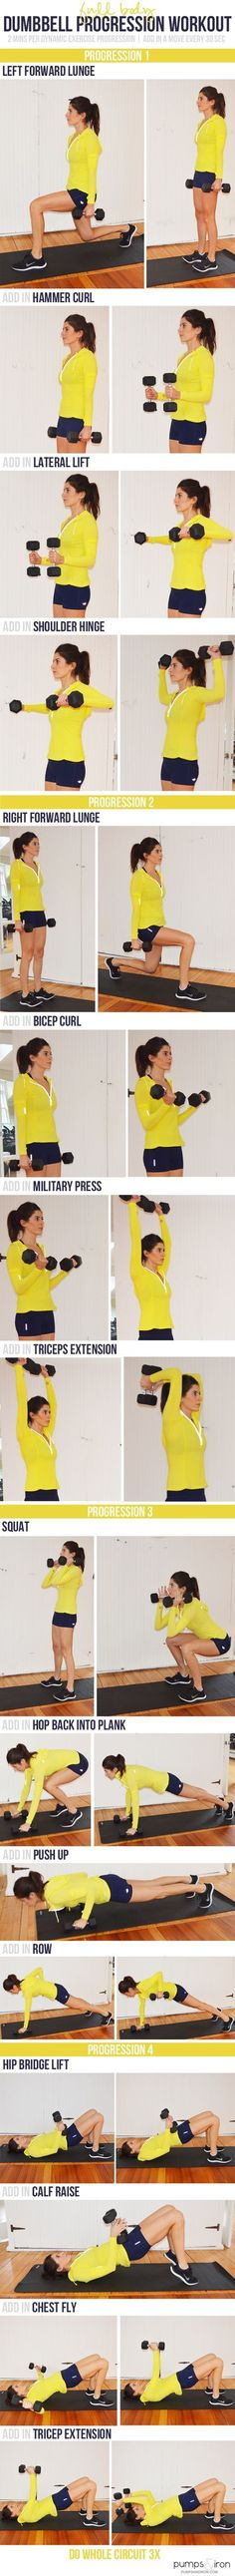 Full-Body Dumbbell Workout -- takes under 30 minutes to complete Body pump